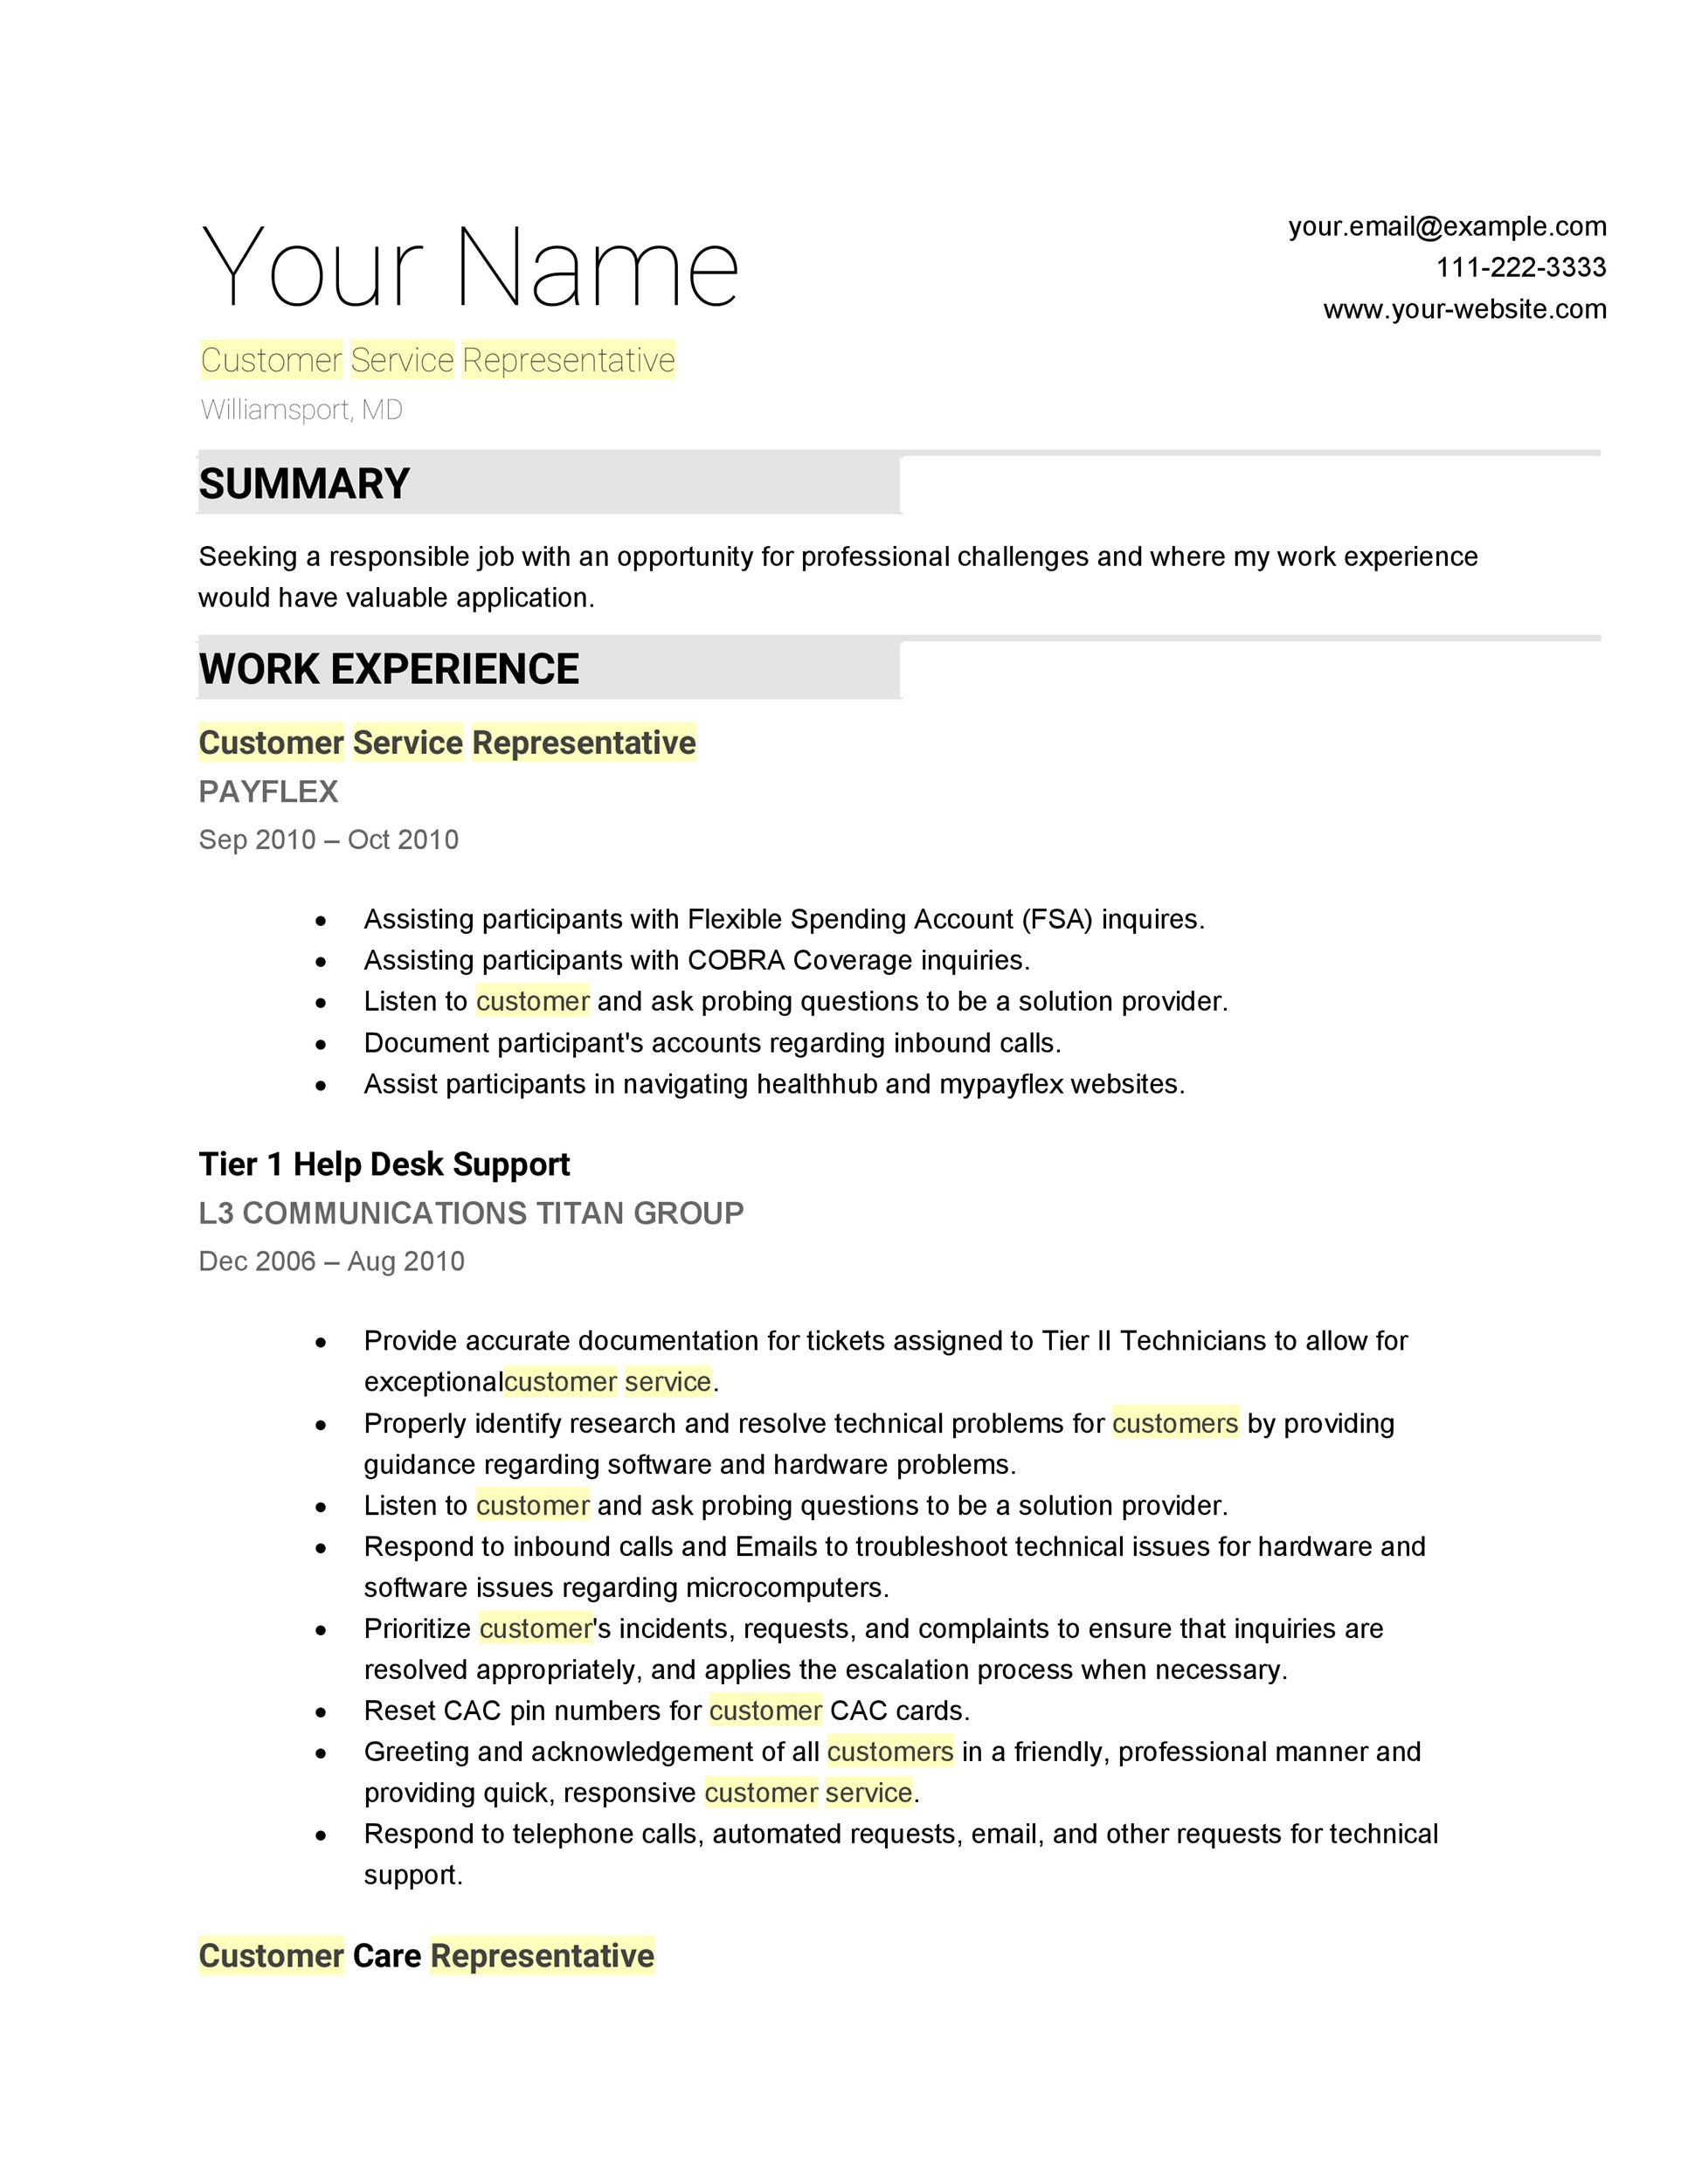 30+ Customer Service Resume Examples - Template Lab - Resume Of A Customer Service Representative